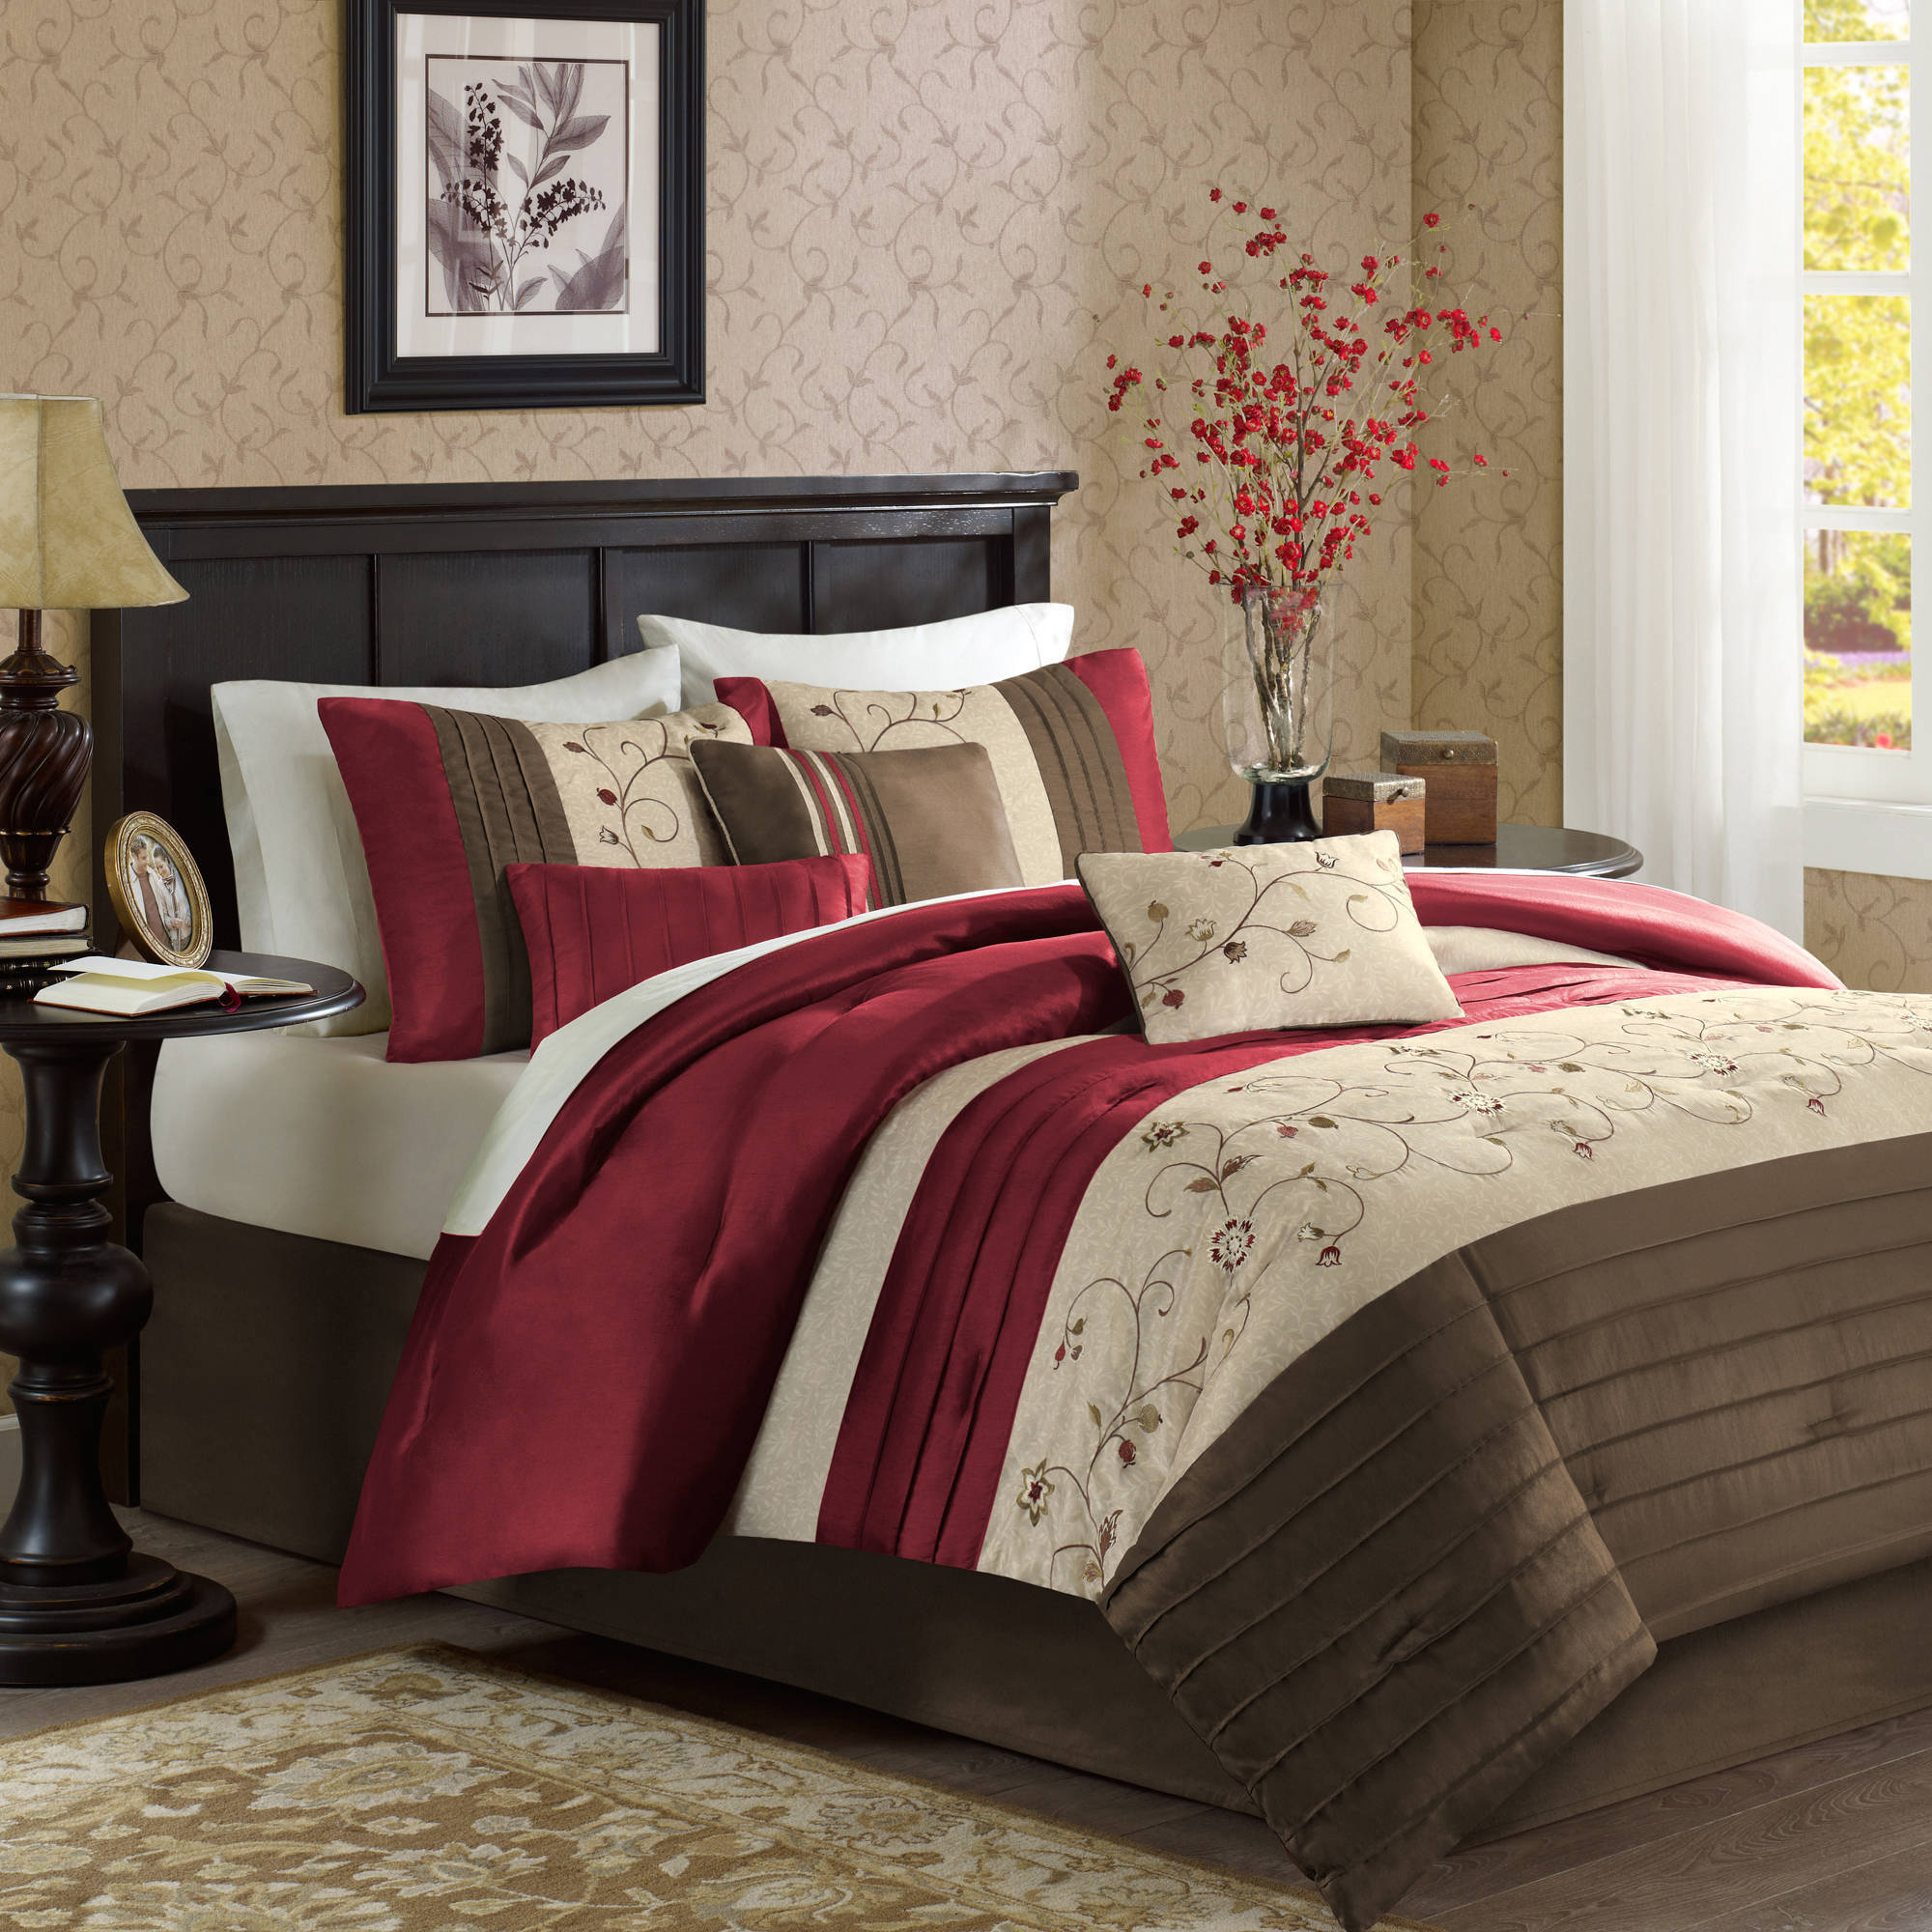 bath suede home geneva set reversible pdx fashion bed mink wayfair comforter micro piece